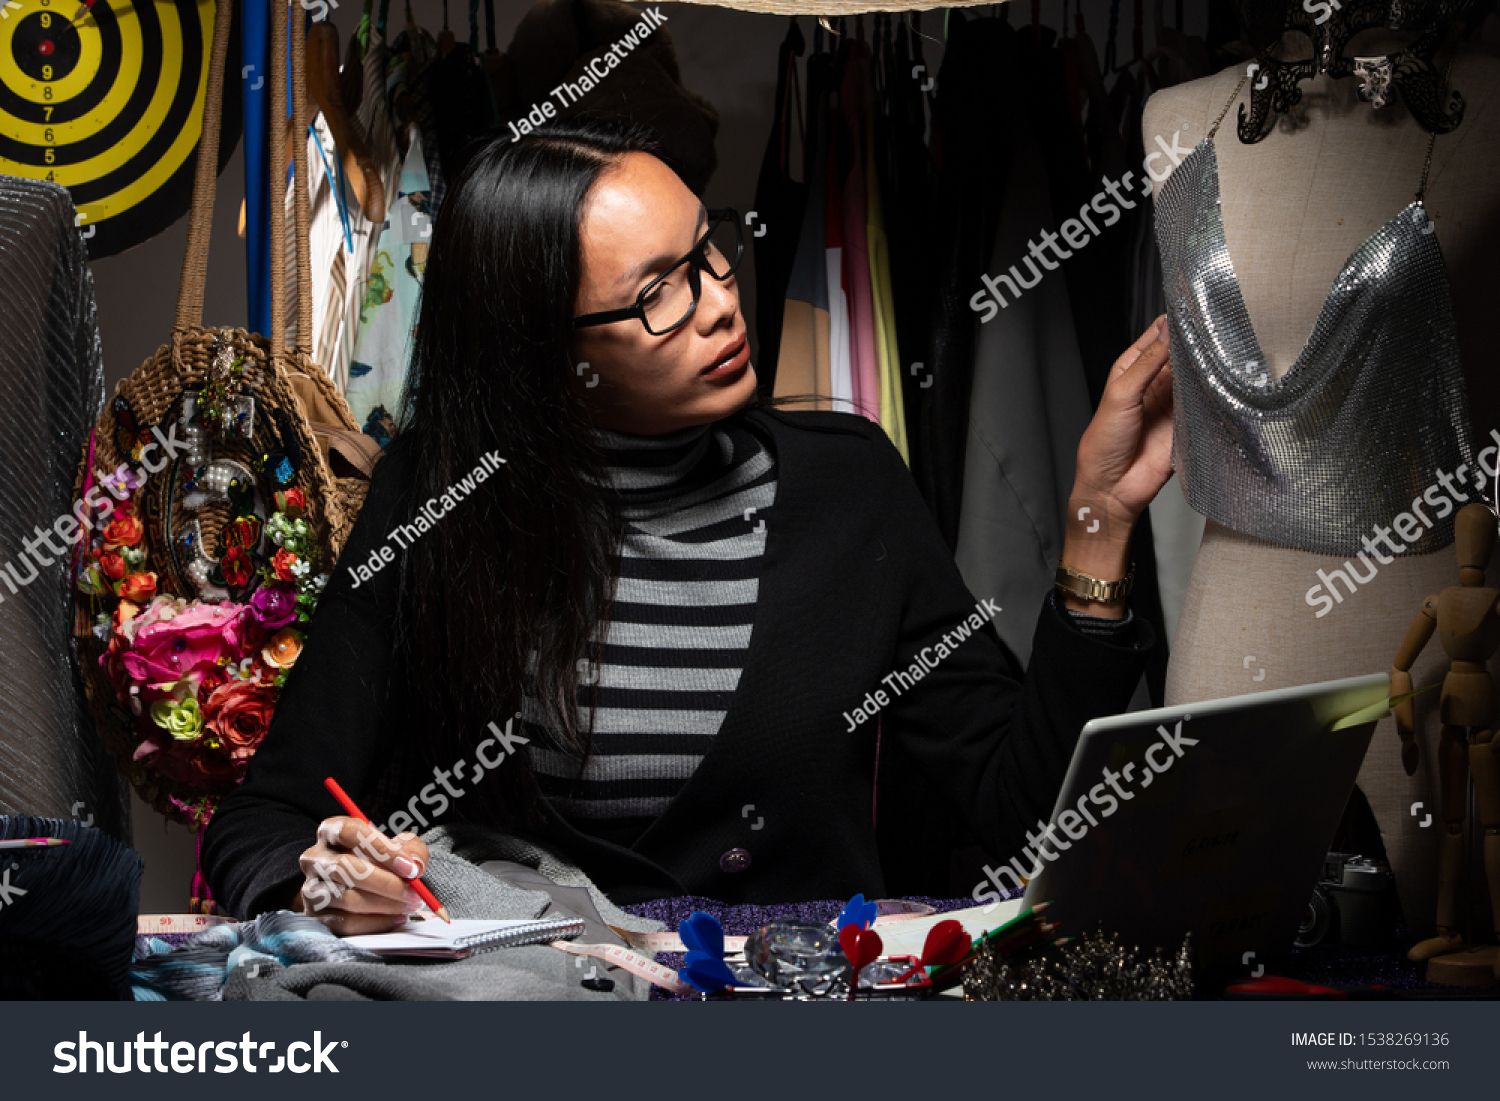 Diversity Fashion Designer Checks Material On Business Finance Stock Image 1538269136